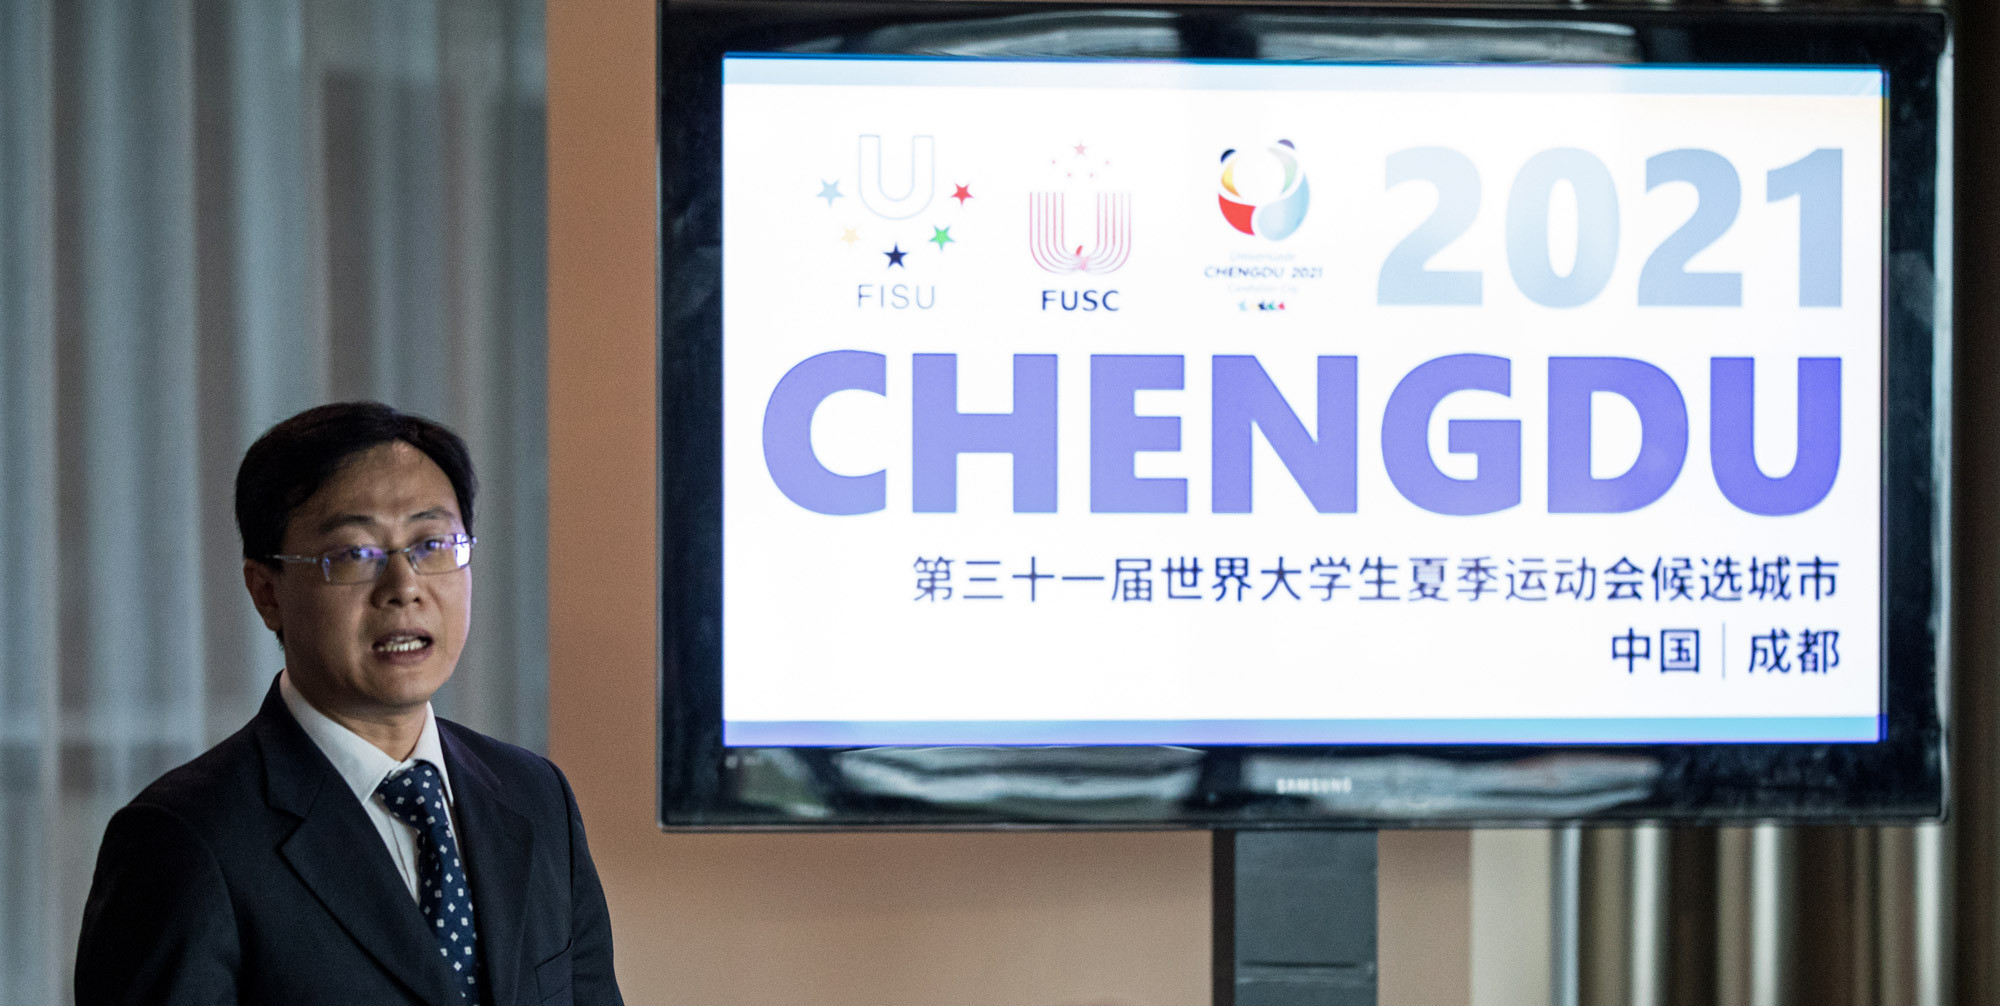 Chengdu to be named as 2021 Summer Universiade host